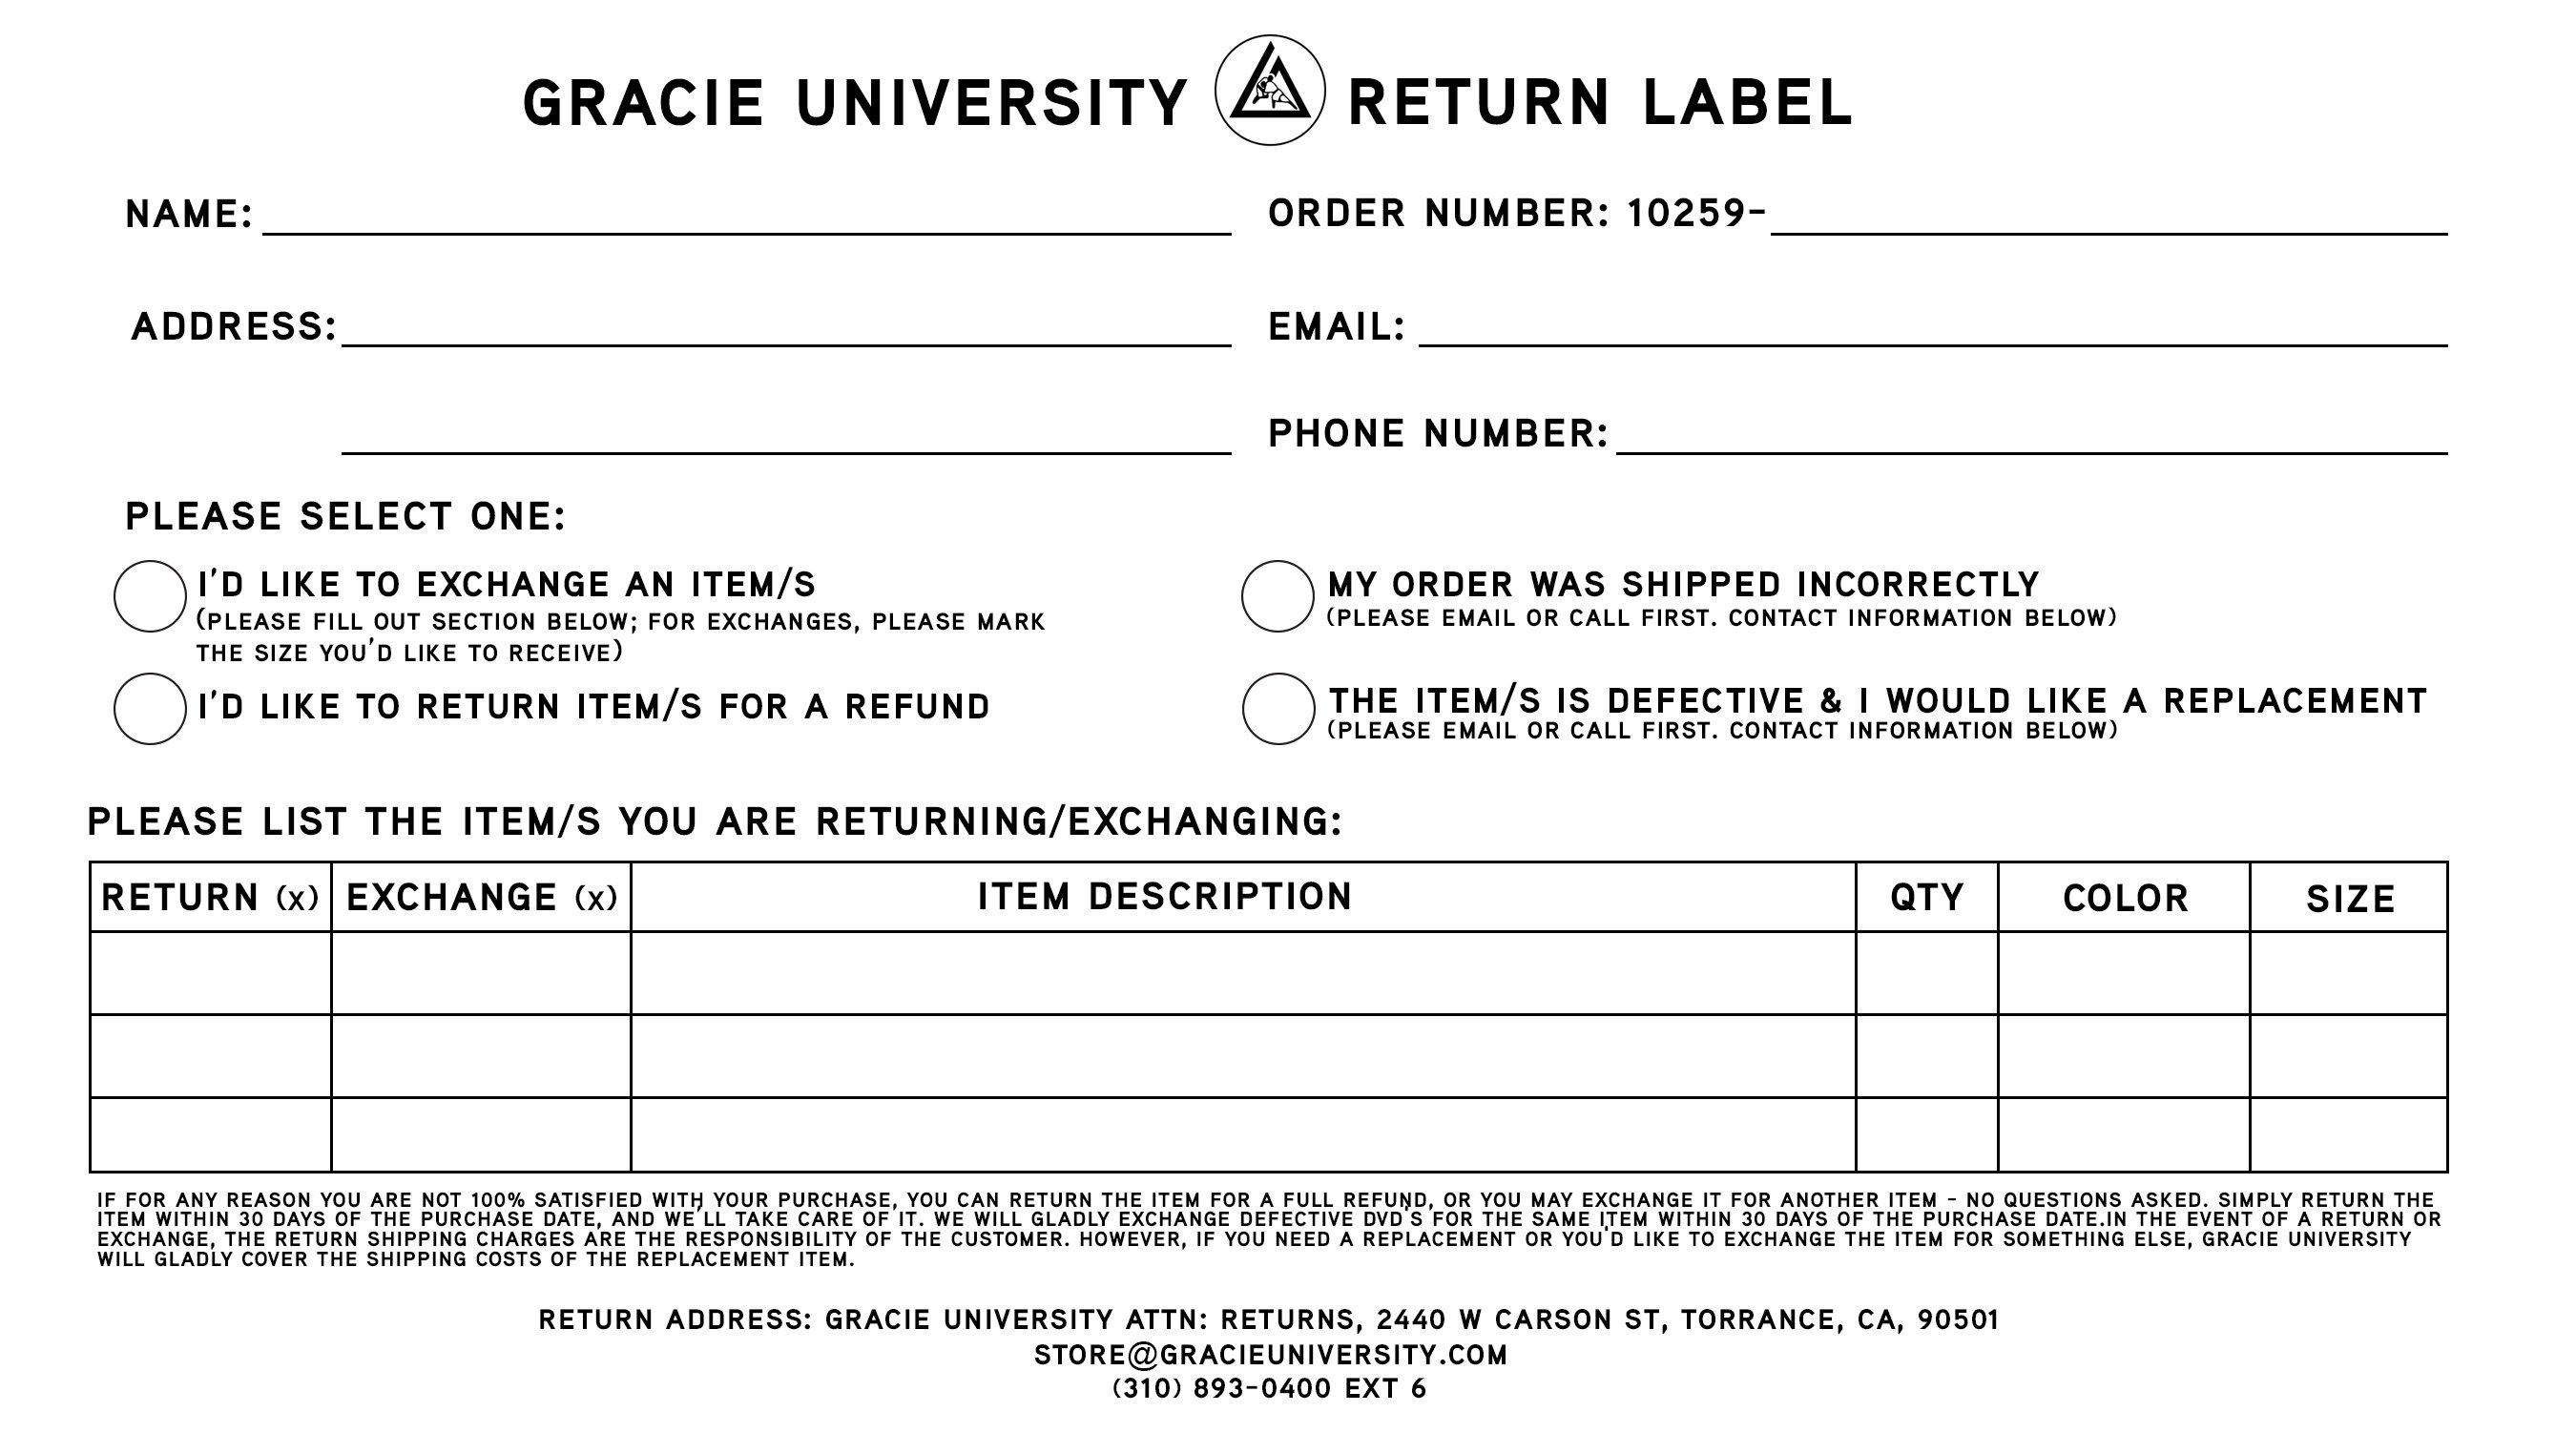 Store info click here to print out a return shipping label that can be attached to the item for return ccuart Images